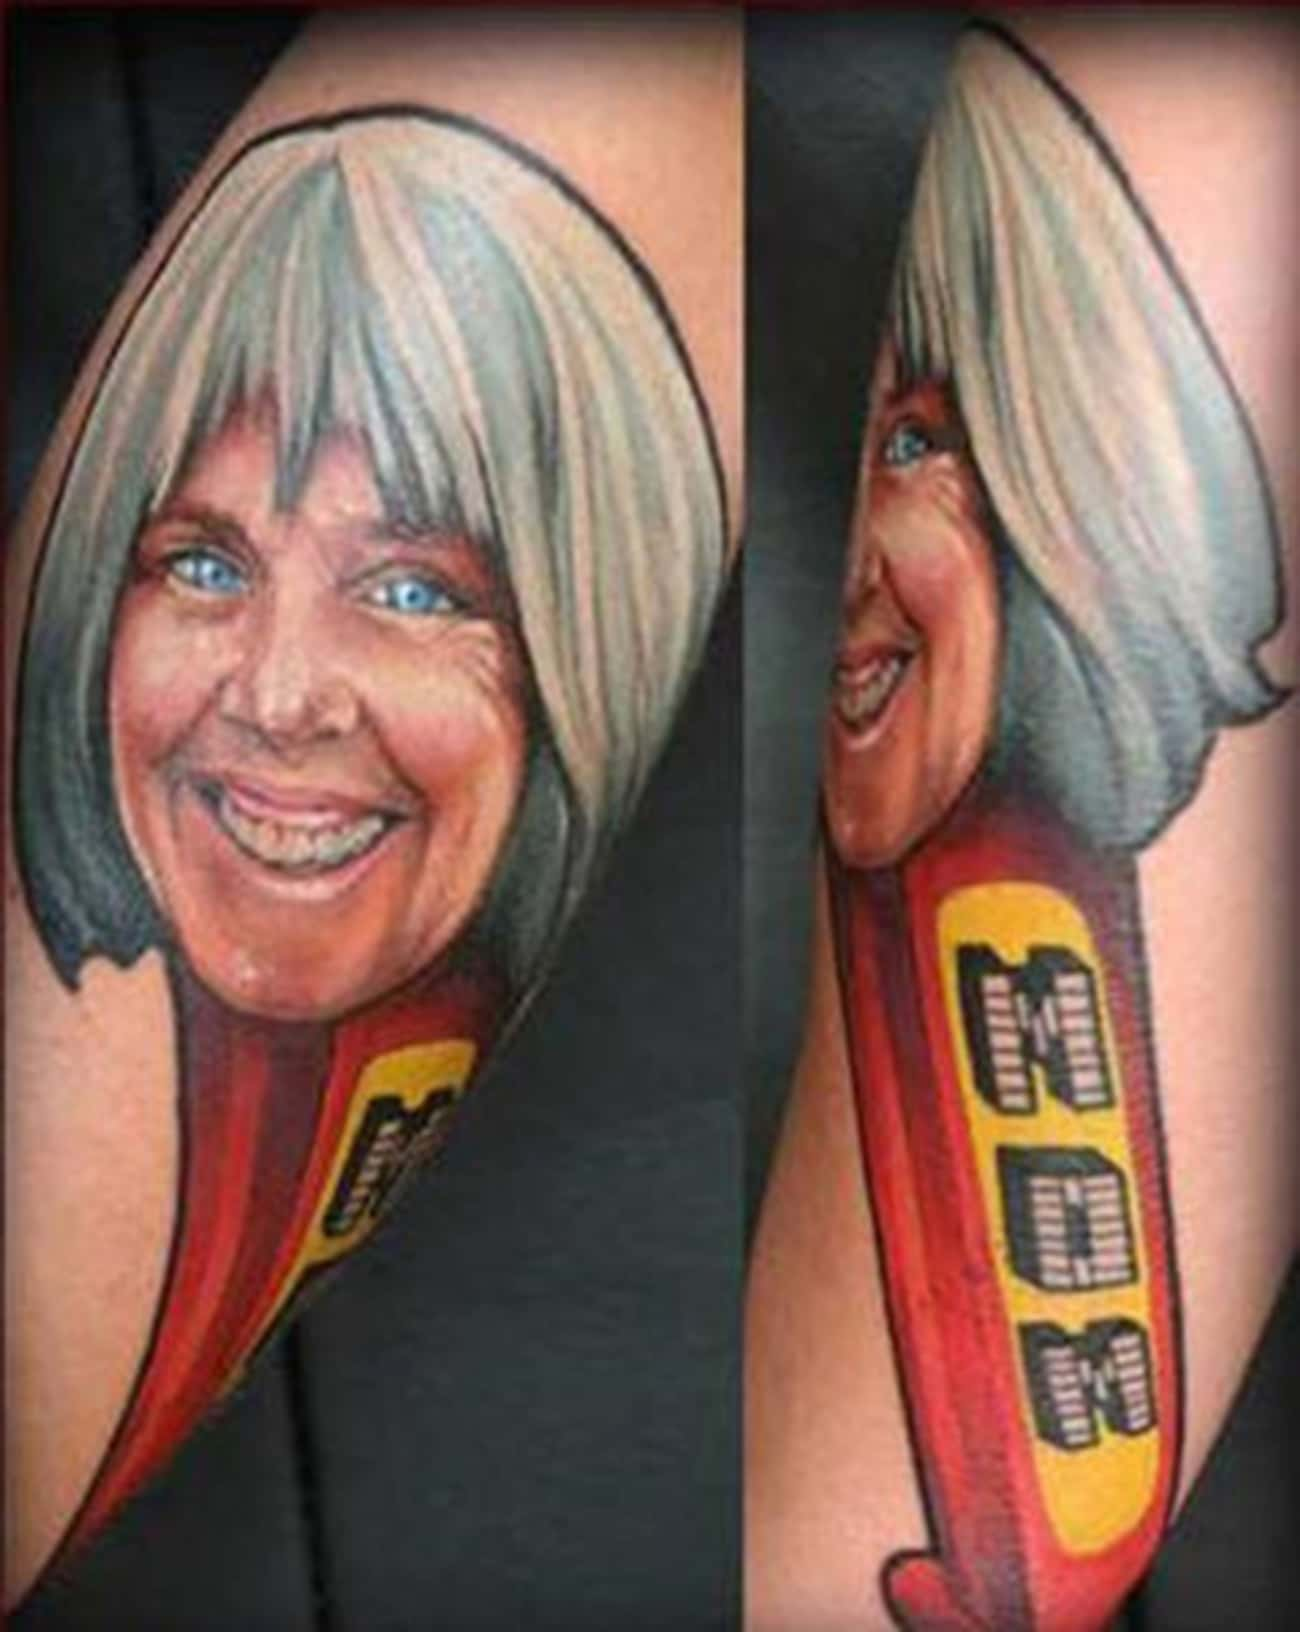 Mom Was Proud of Her Pez Colle is listed (or ranked) 2 on the list The Worst Mom Tattoos